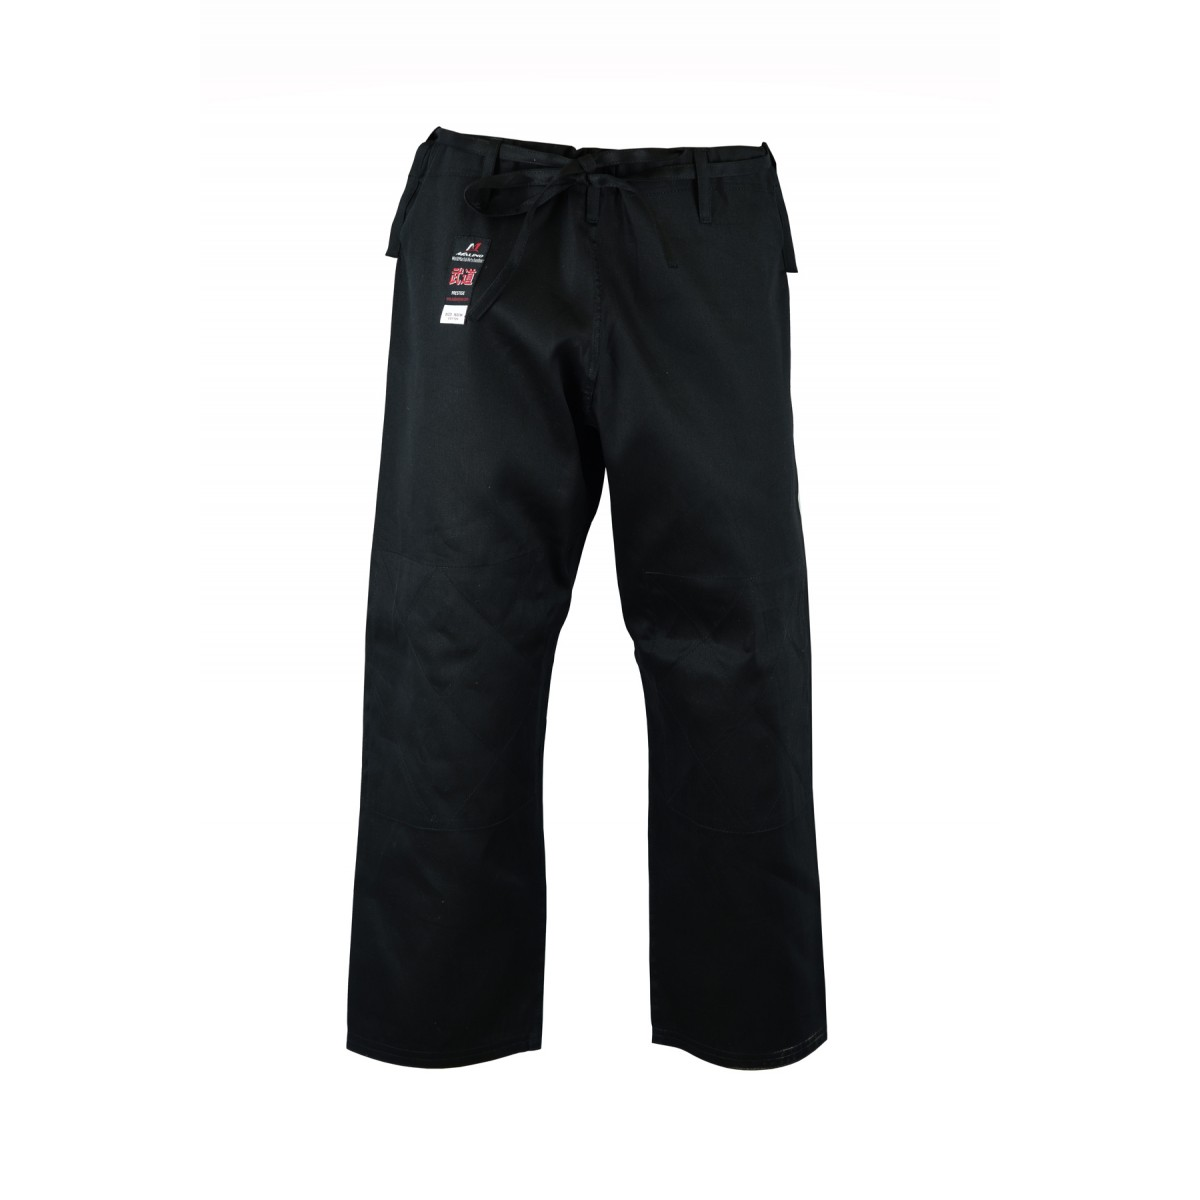 Adult Student Judo Trousers Lightweight Cotton Black - 7oz